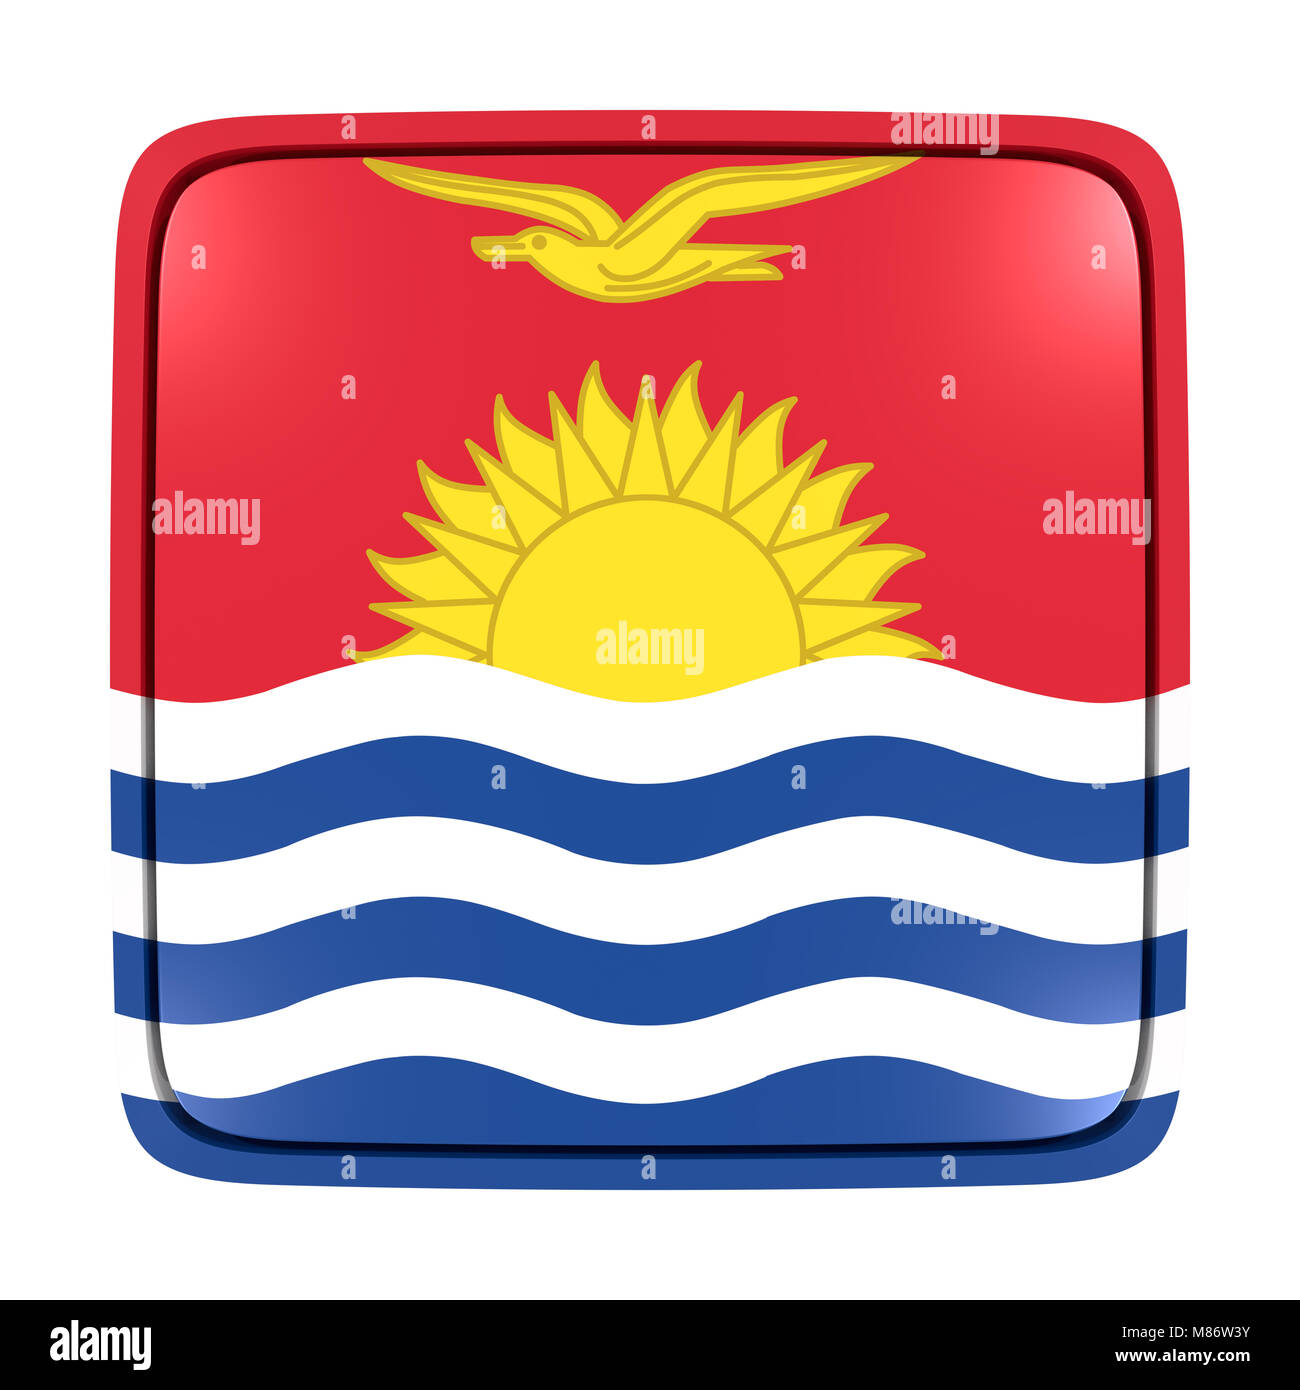 3d rendering of a Kiribati flag icon. Isolated on white background. - Stock Image